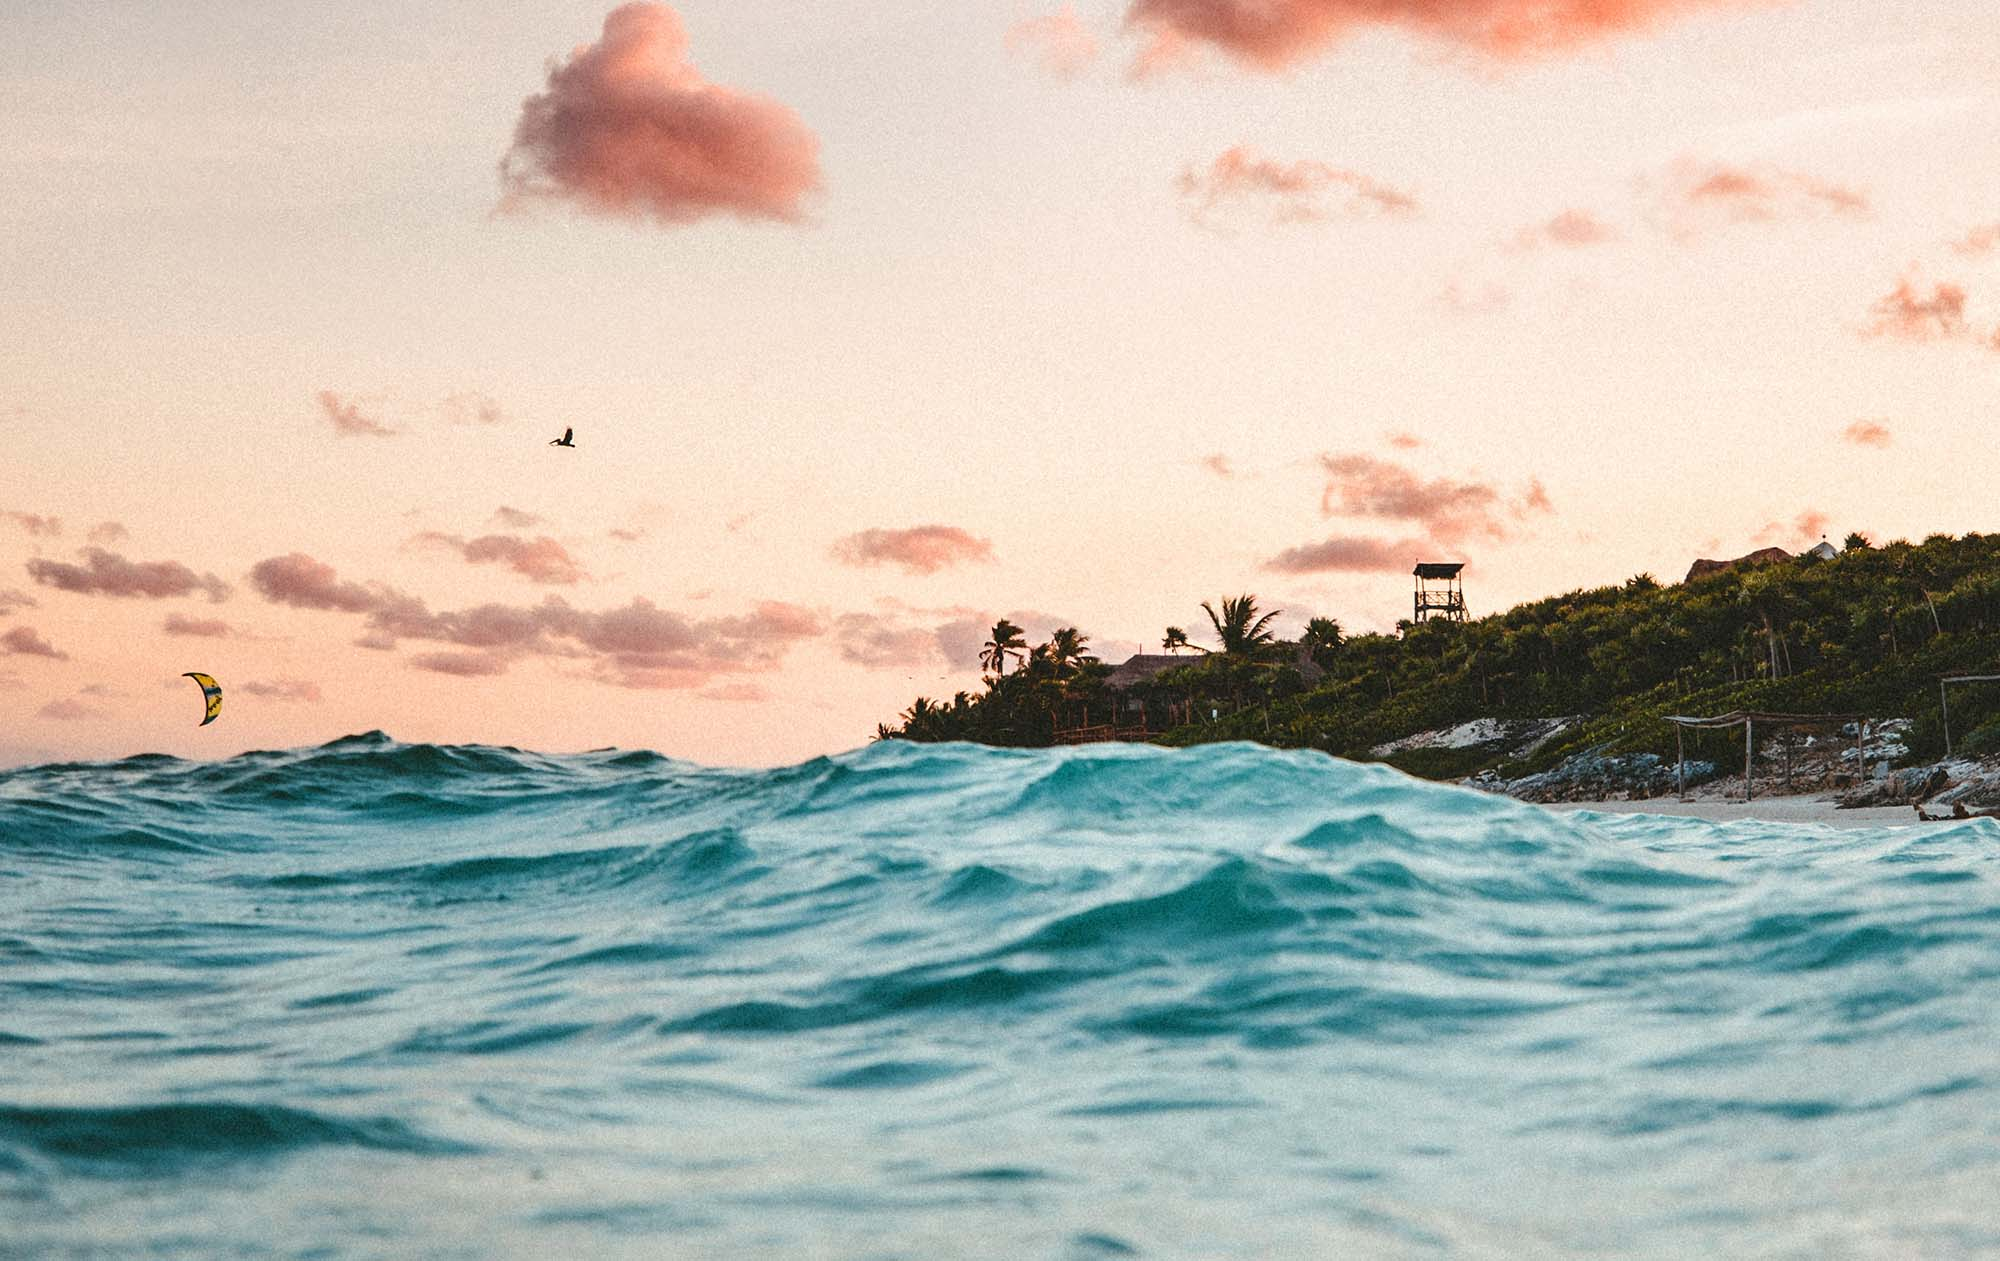 A sunset in the Caribbean. Waves in the foregroudn with the island rising from the sea.